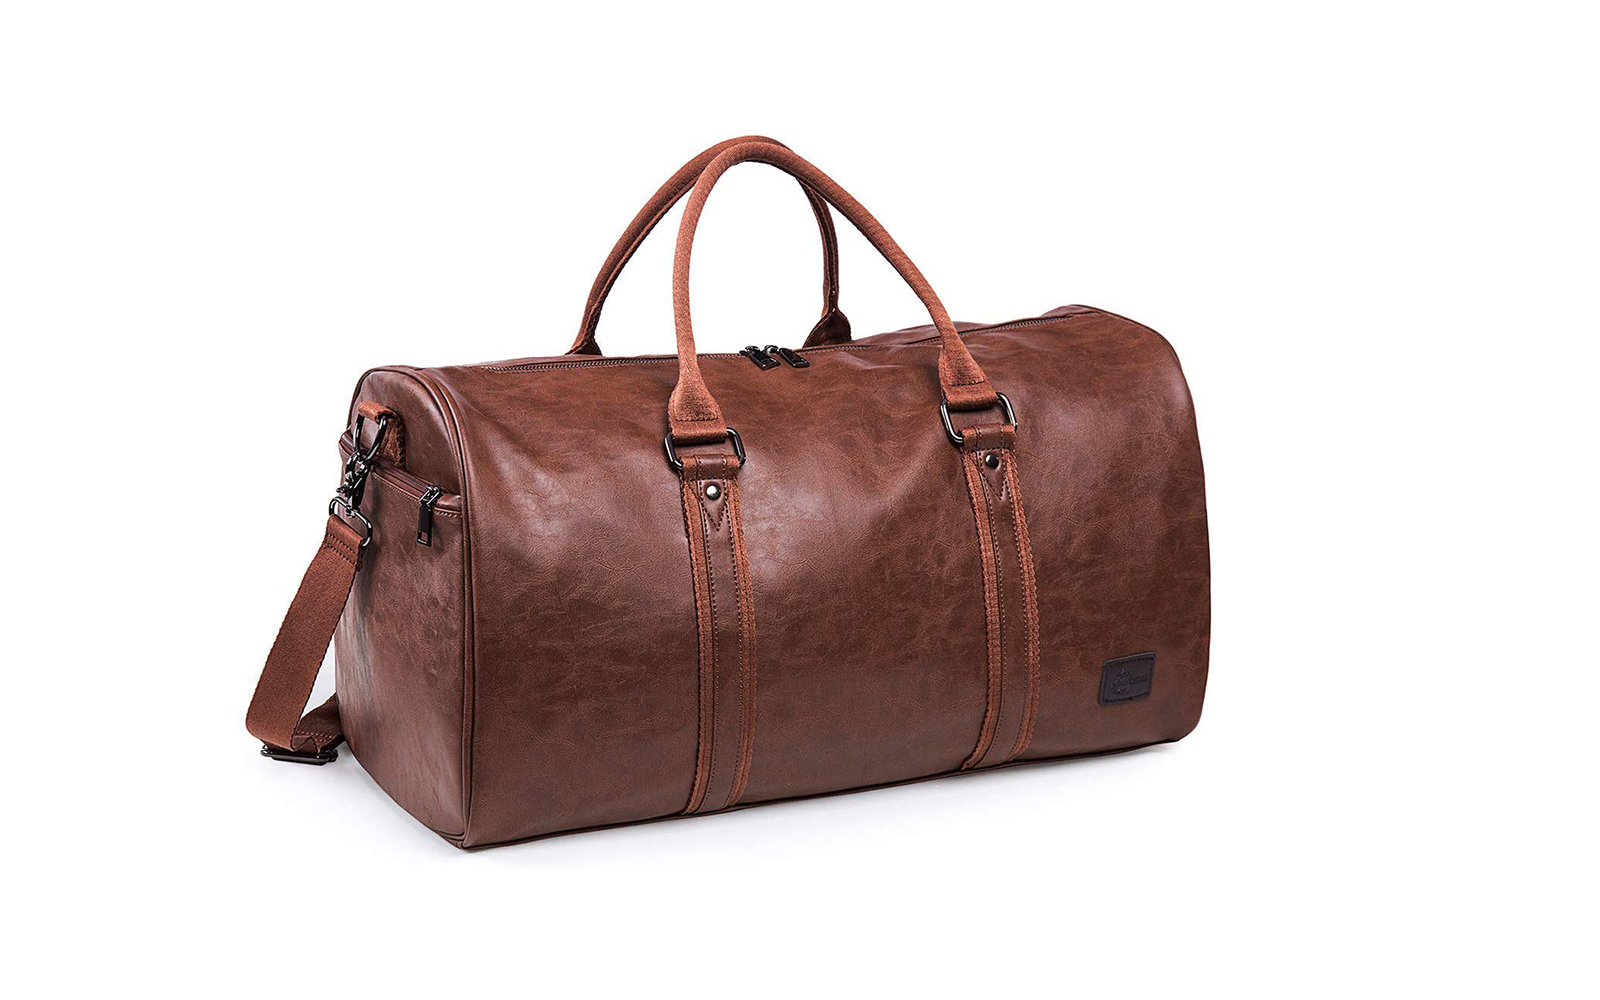 Amazon Leather Travel Bag with Shoe Pouch